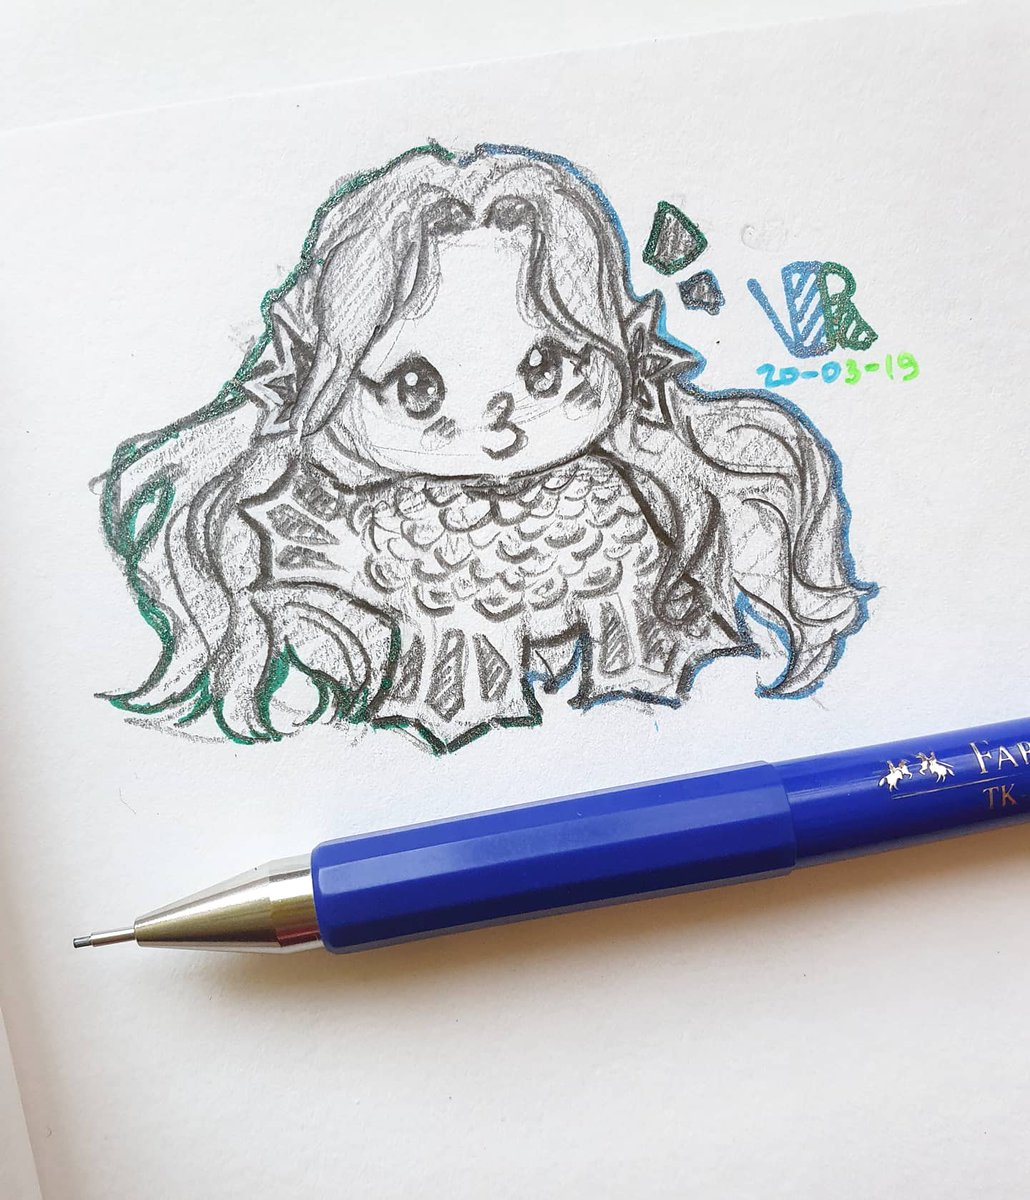 It's a Japanese mermaid called Amabie who comes out from the sea to predict good harvest or epidemics. But this lil Amabie just wants everyone to stay safe and healthy!! 。 。 #アニメ #anime #sketch #かわいい #すごい #kawaii #얼짱 #소녀 #예쁘다 #covid_19 #coronaviruspic.twitter.com/iq9WYDxPfY